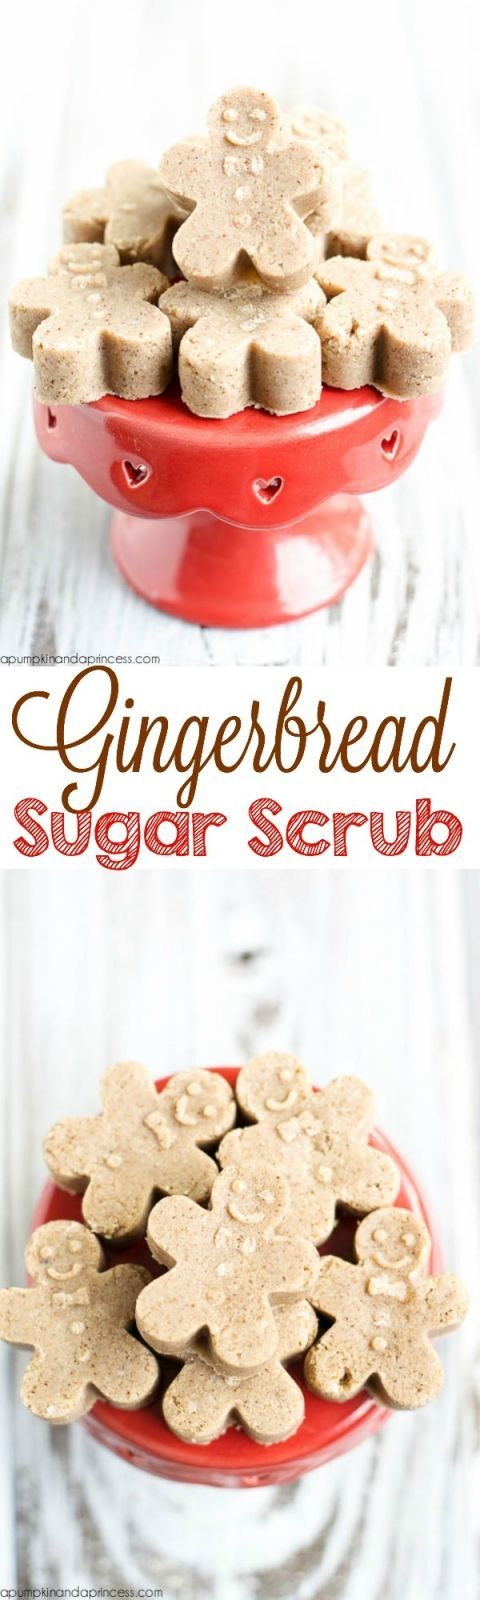 gingerbread sugar scrub cubes rezept merry christmas projects and fun pinterest diy. Black Bedroom Furniture Sets. Home Design Ideas